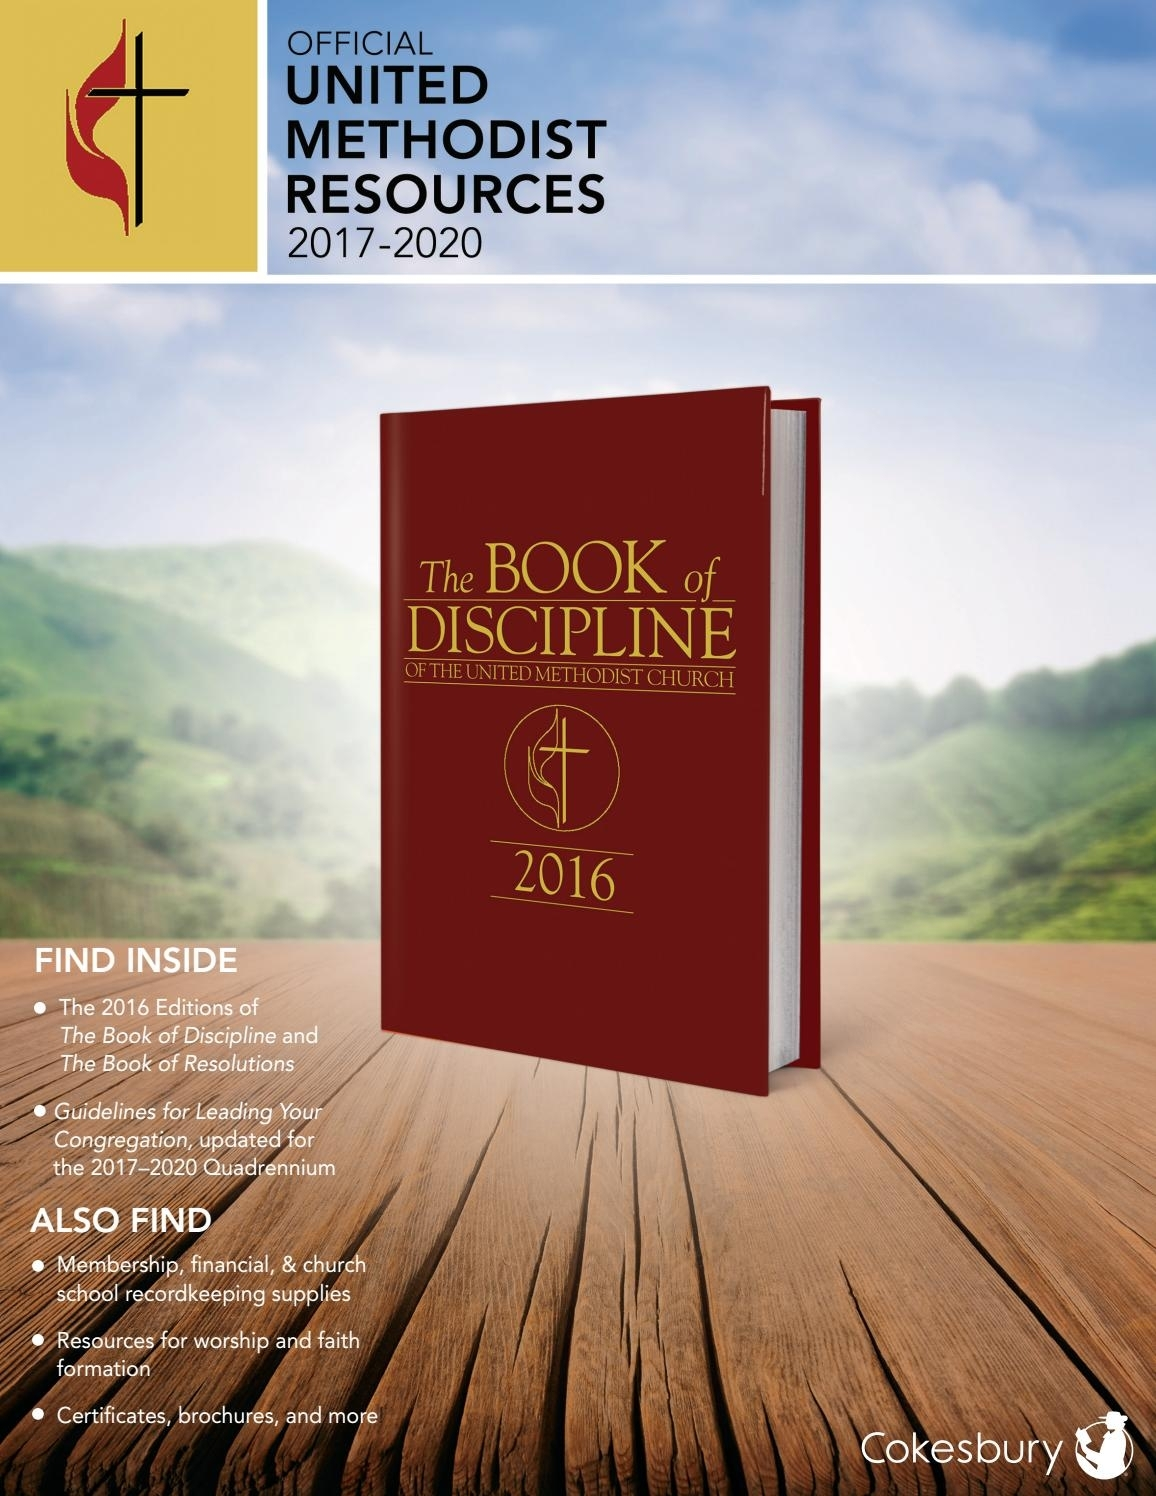 Cokesbury's Official United Methodist Resources 2017-2020 By